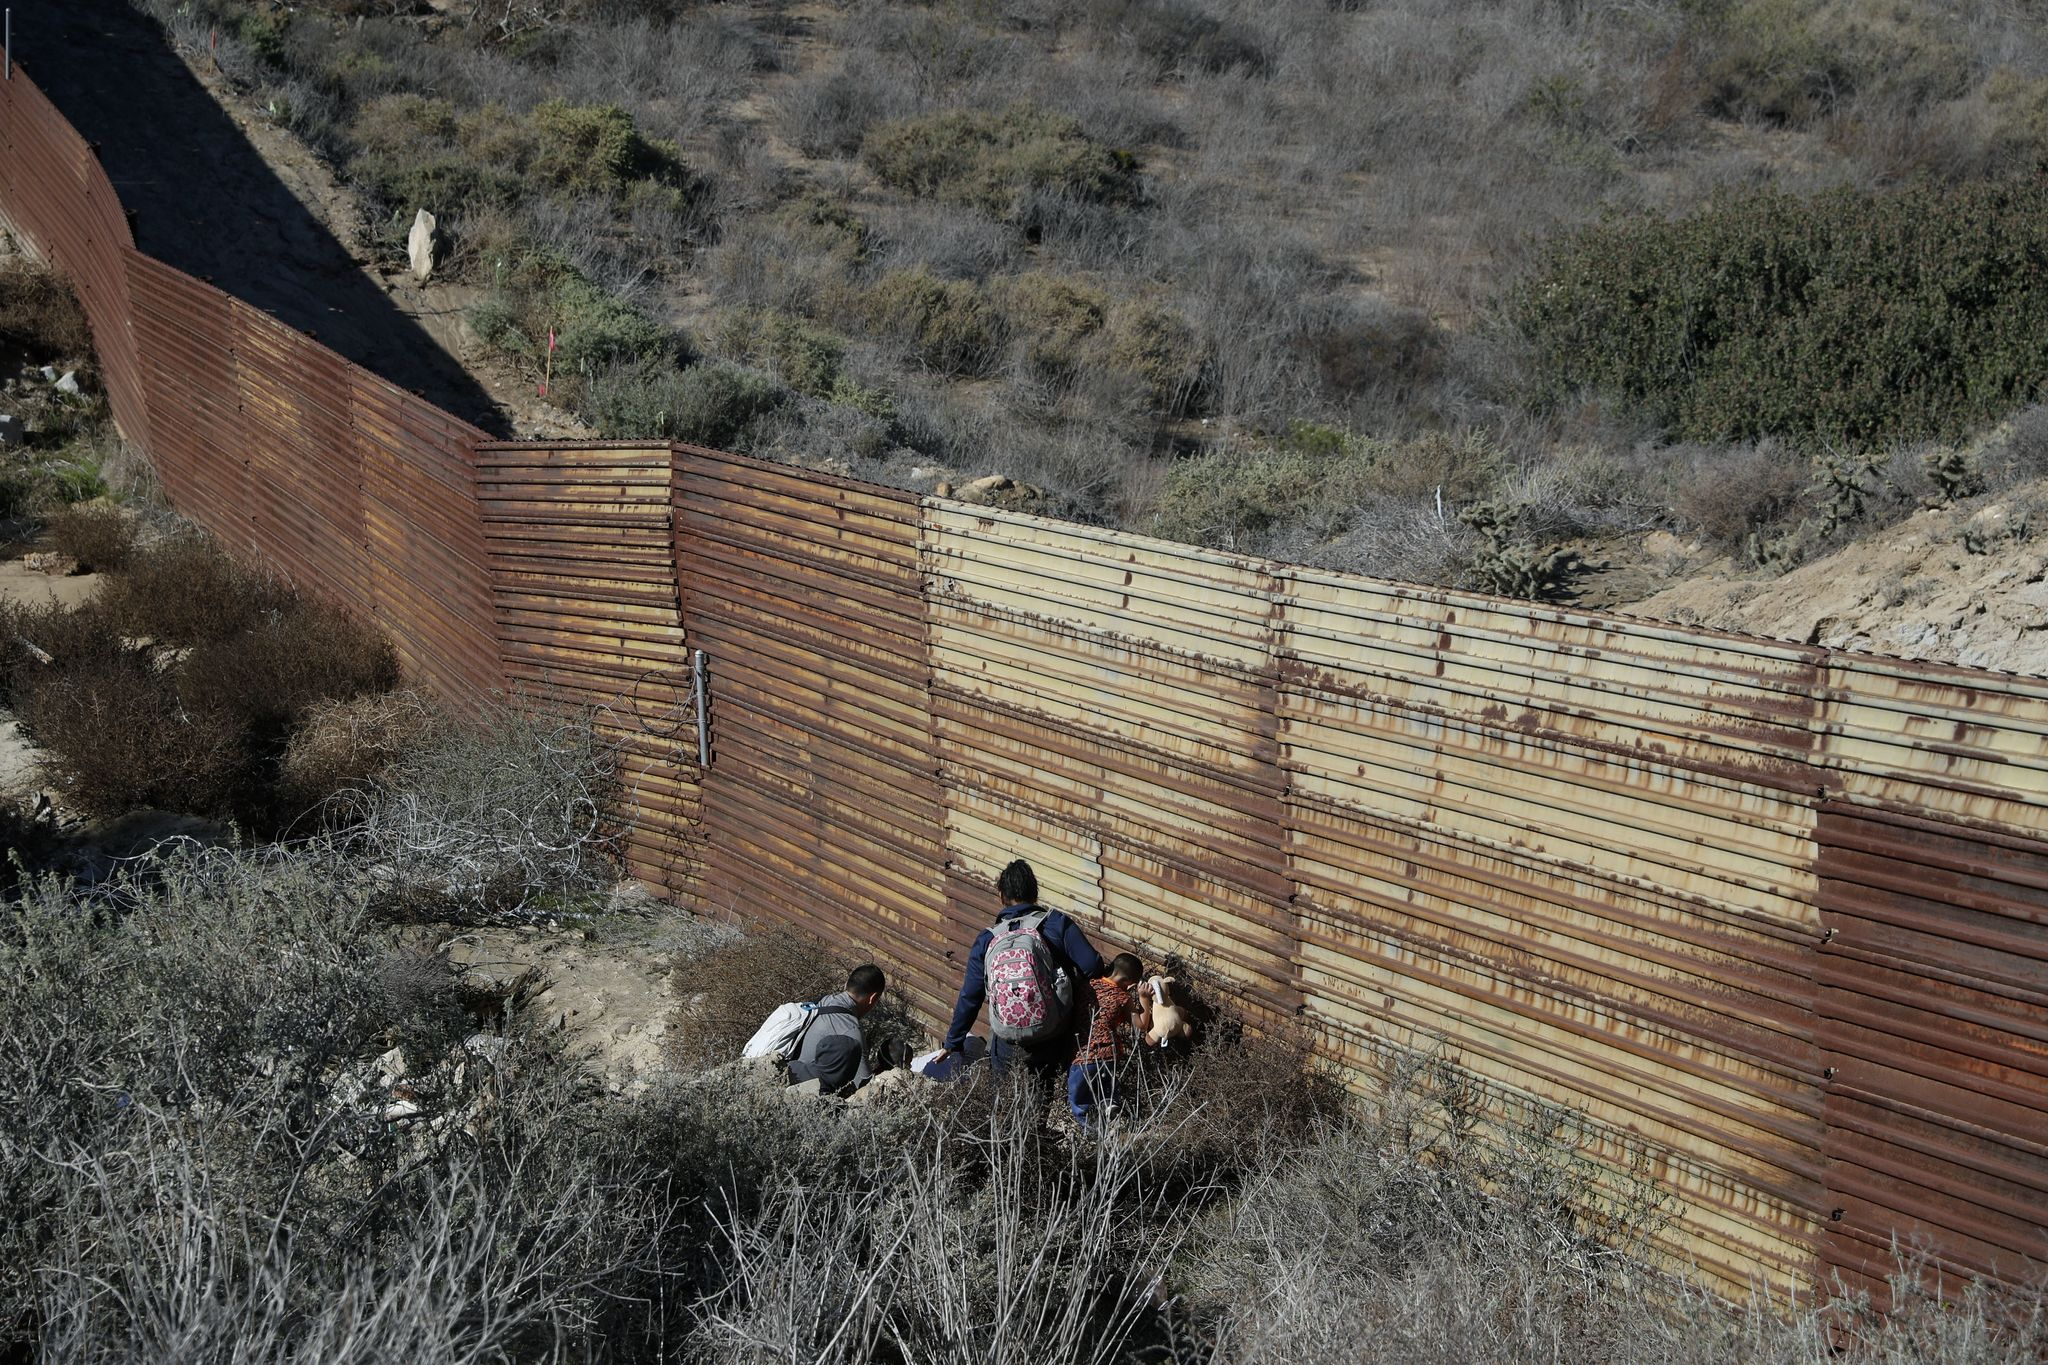 More than 3,000 illegals caught in one day: DHS